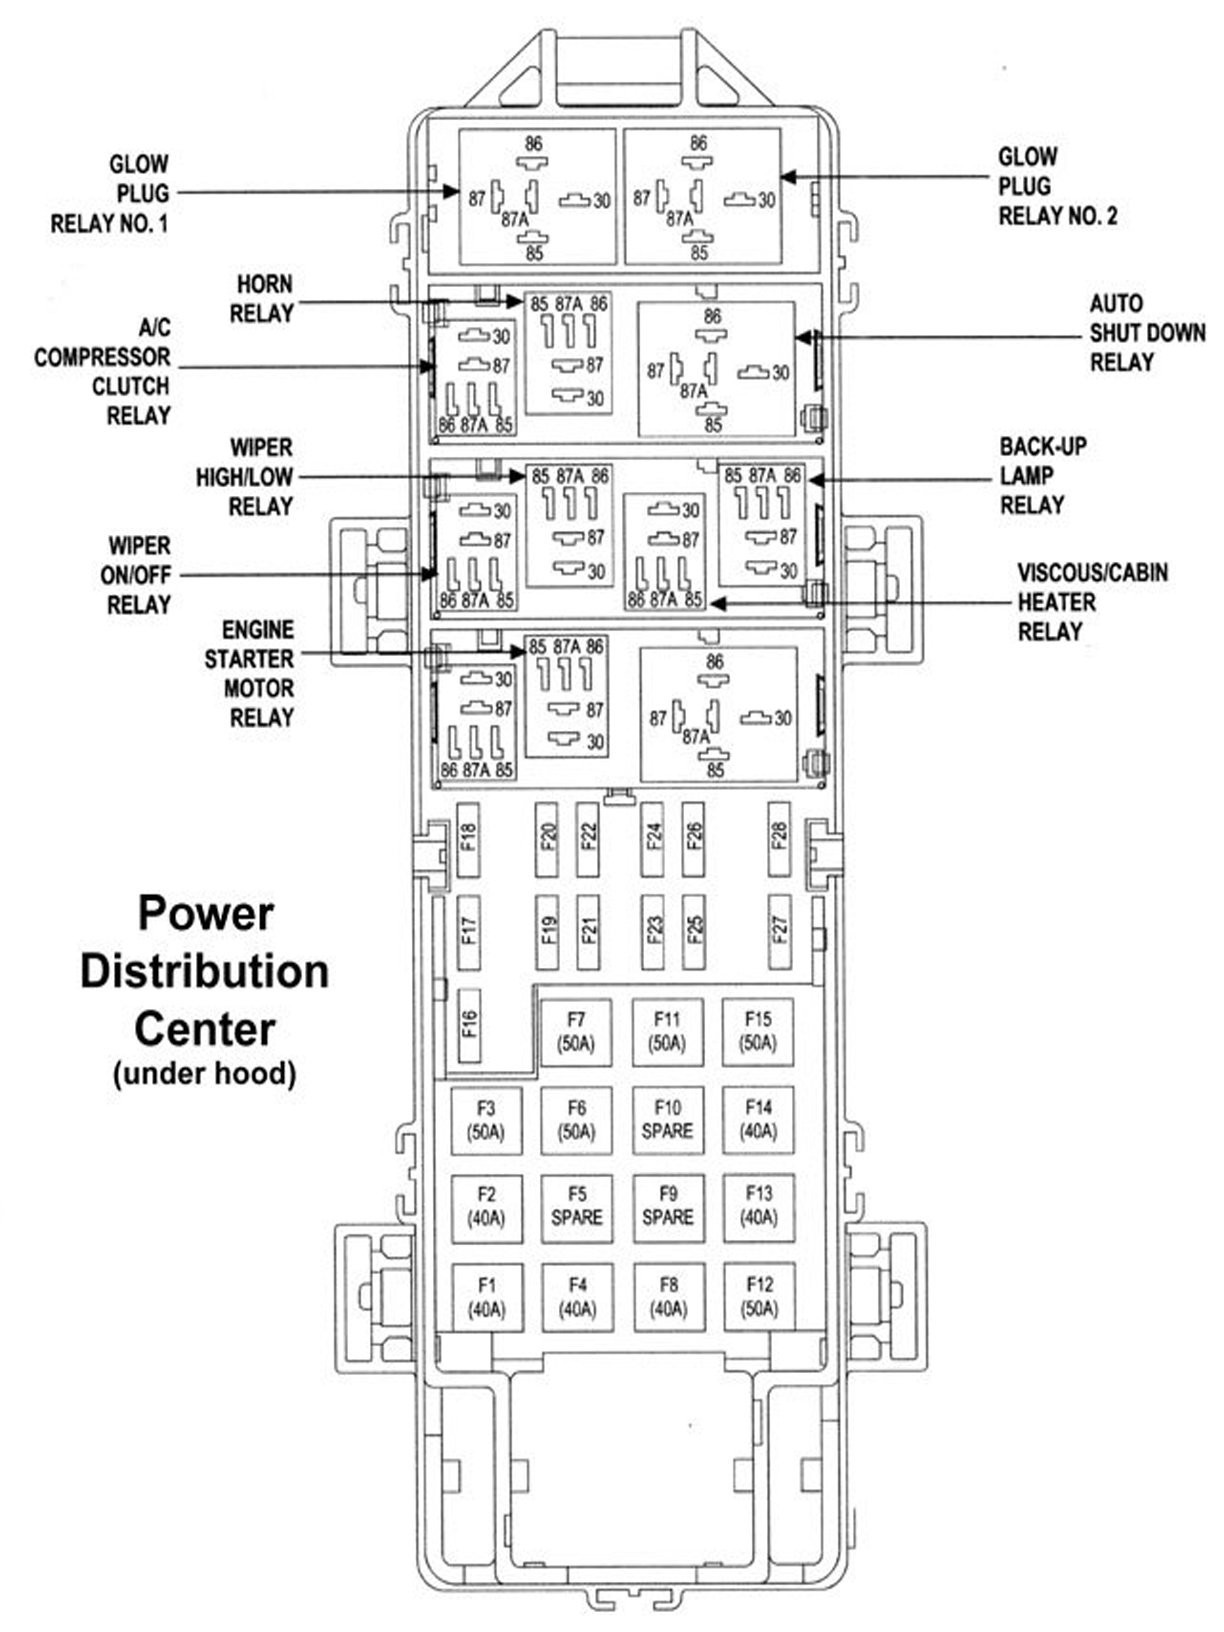 2002 Jeep Grand Cherokee Engine Diagram 1999 Cherokee Fuse Box Wiring Data Of 2002 Jeep Grand Cherokee Engine Diagram